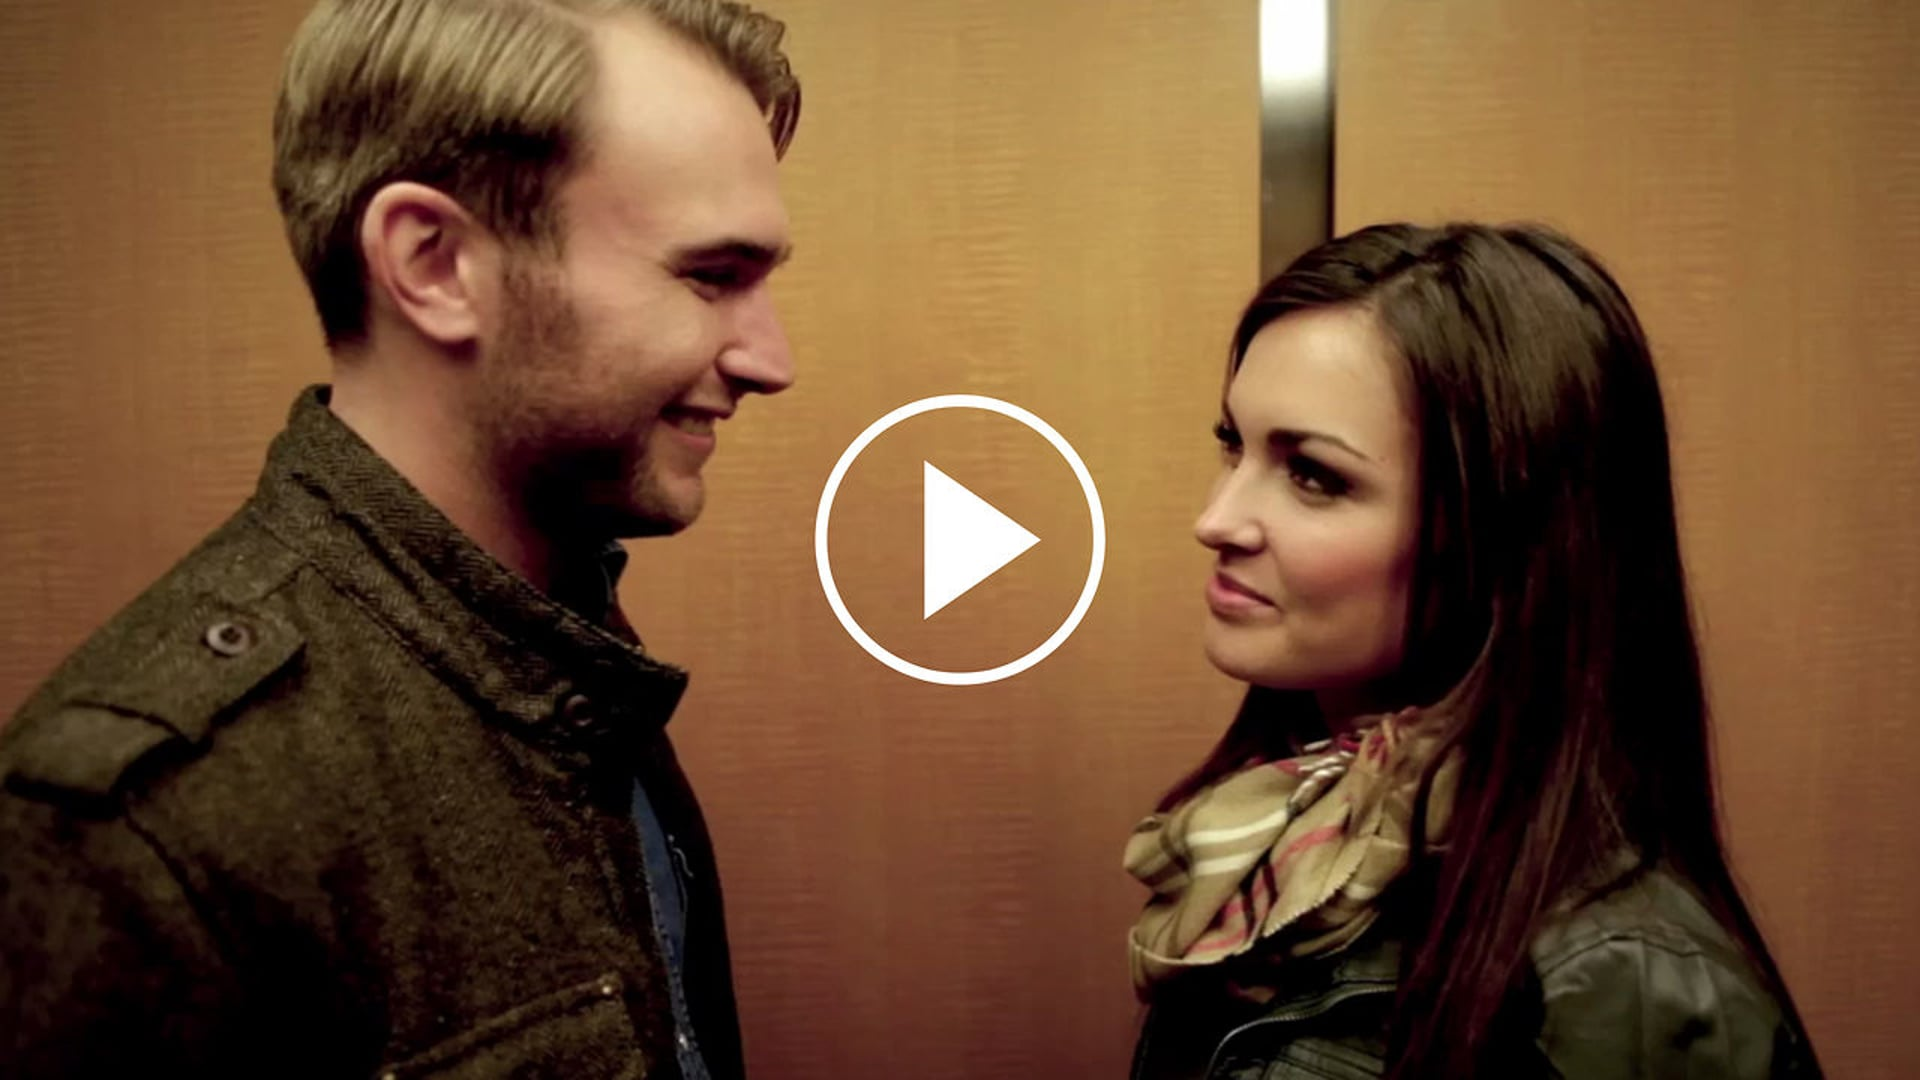 The 5 Love Languages Trailer